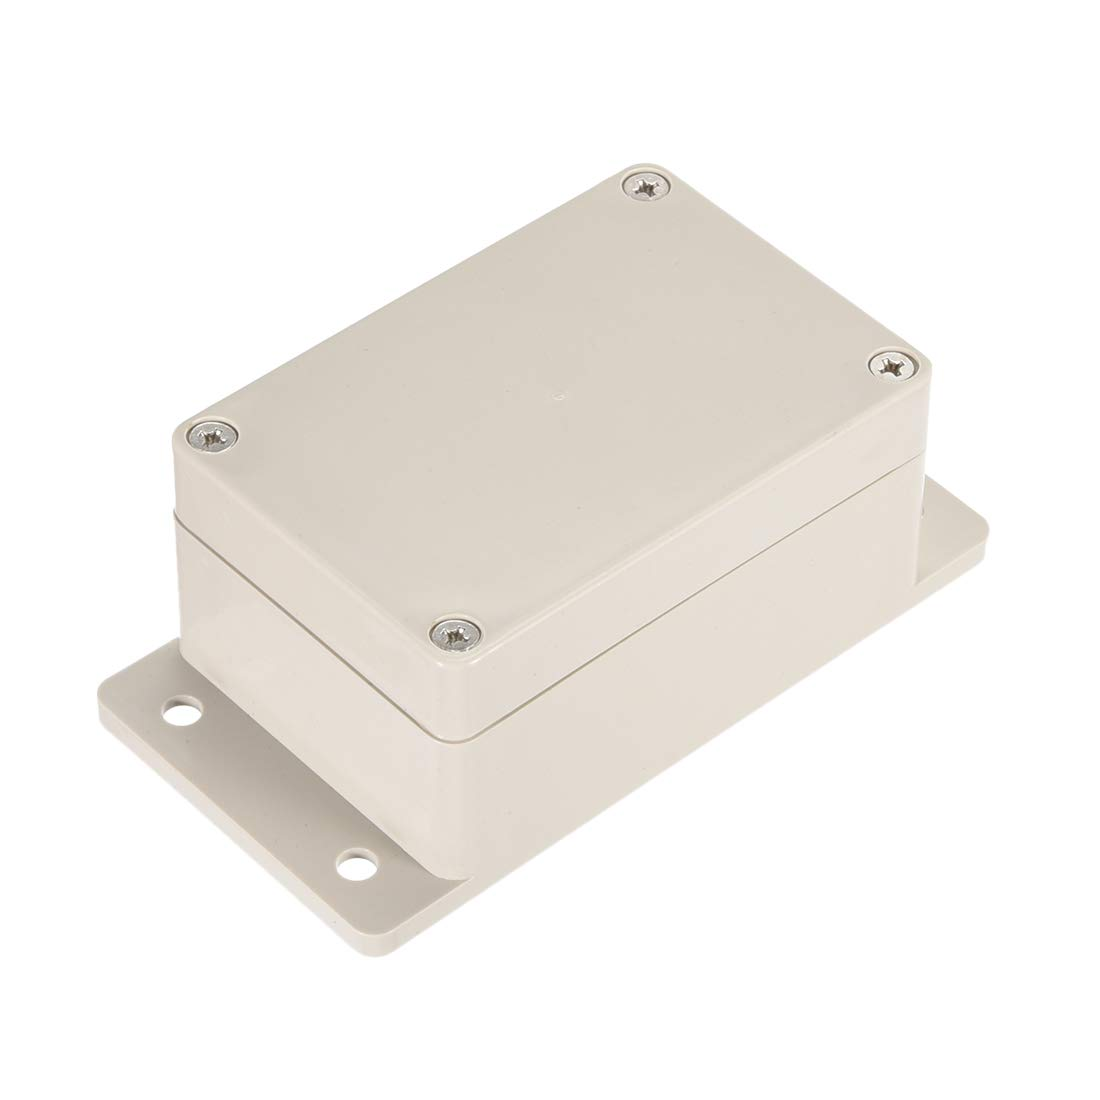 uxcell® 3.9x2.67x2(100mmx68mmx50mm) ABS Junction Box Universal Electric Project Enclosure w Mounting Fixed Hole a17031600ux1093